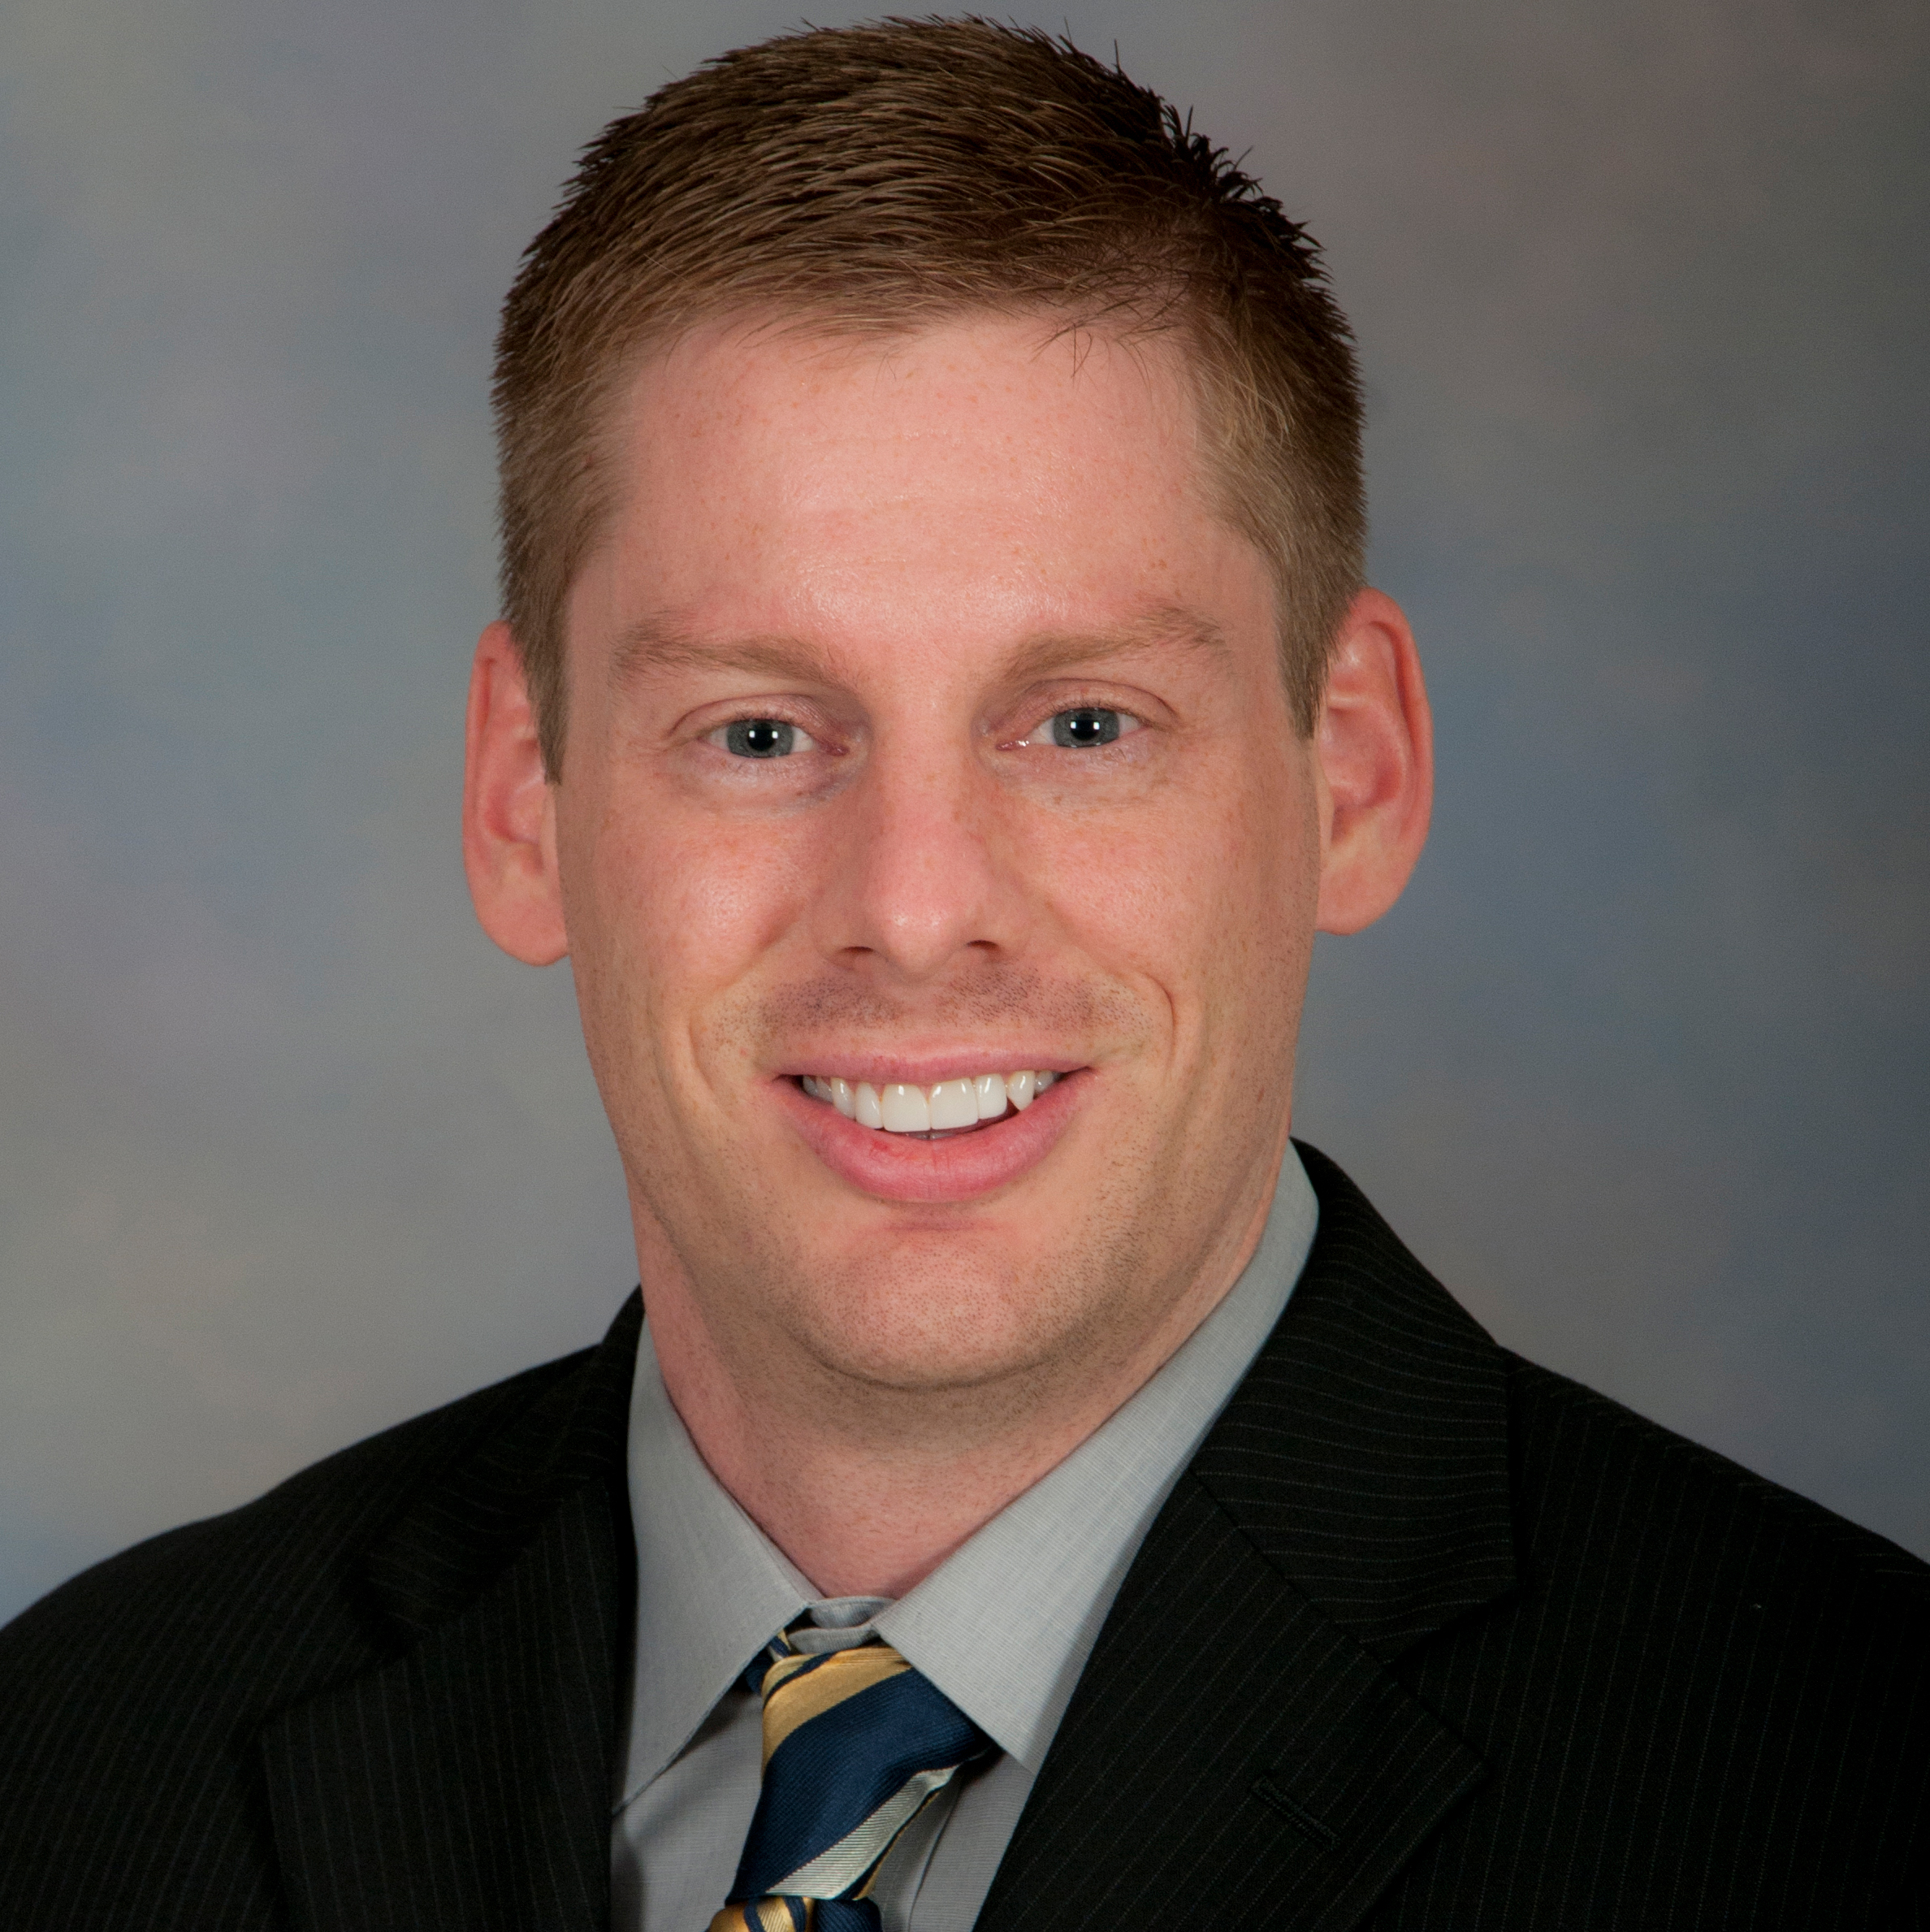 Thomas Buford, Ph.D., Assistant Professor and Director, Health Promotion Center